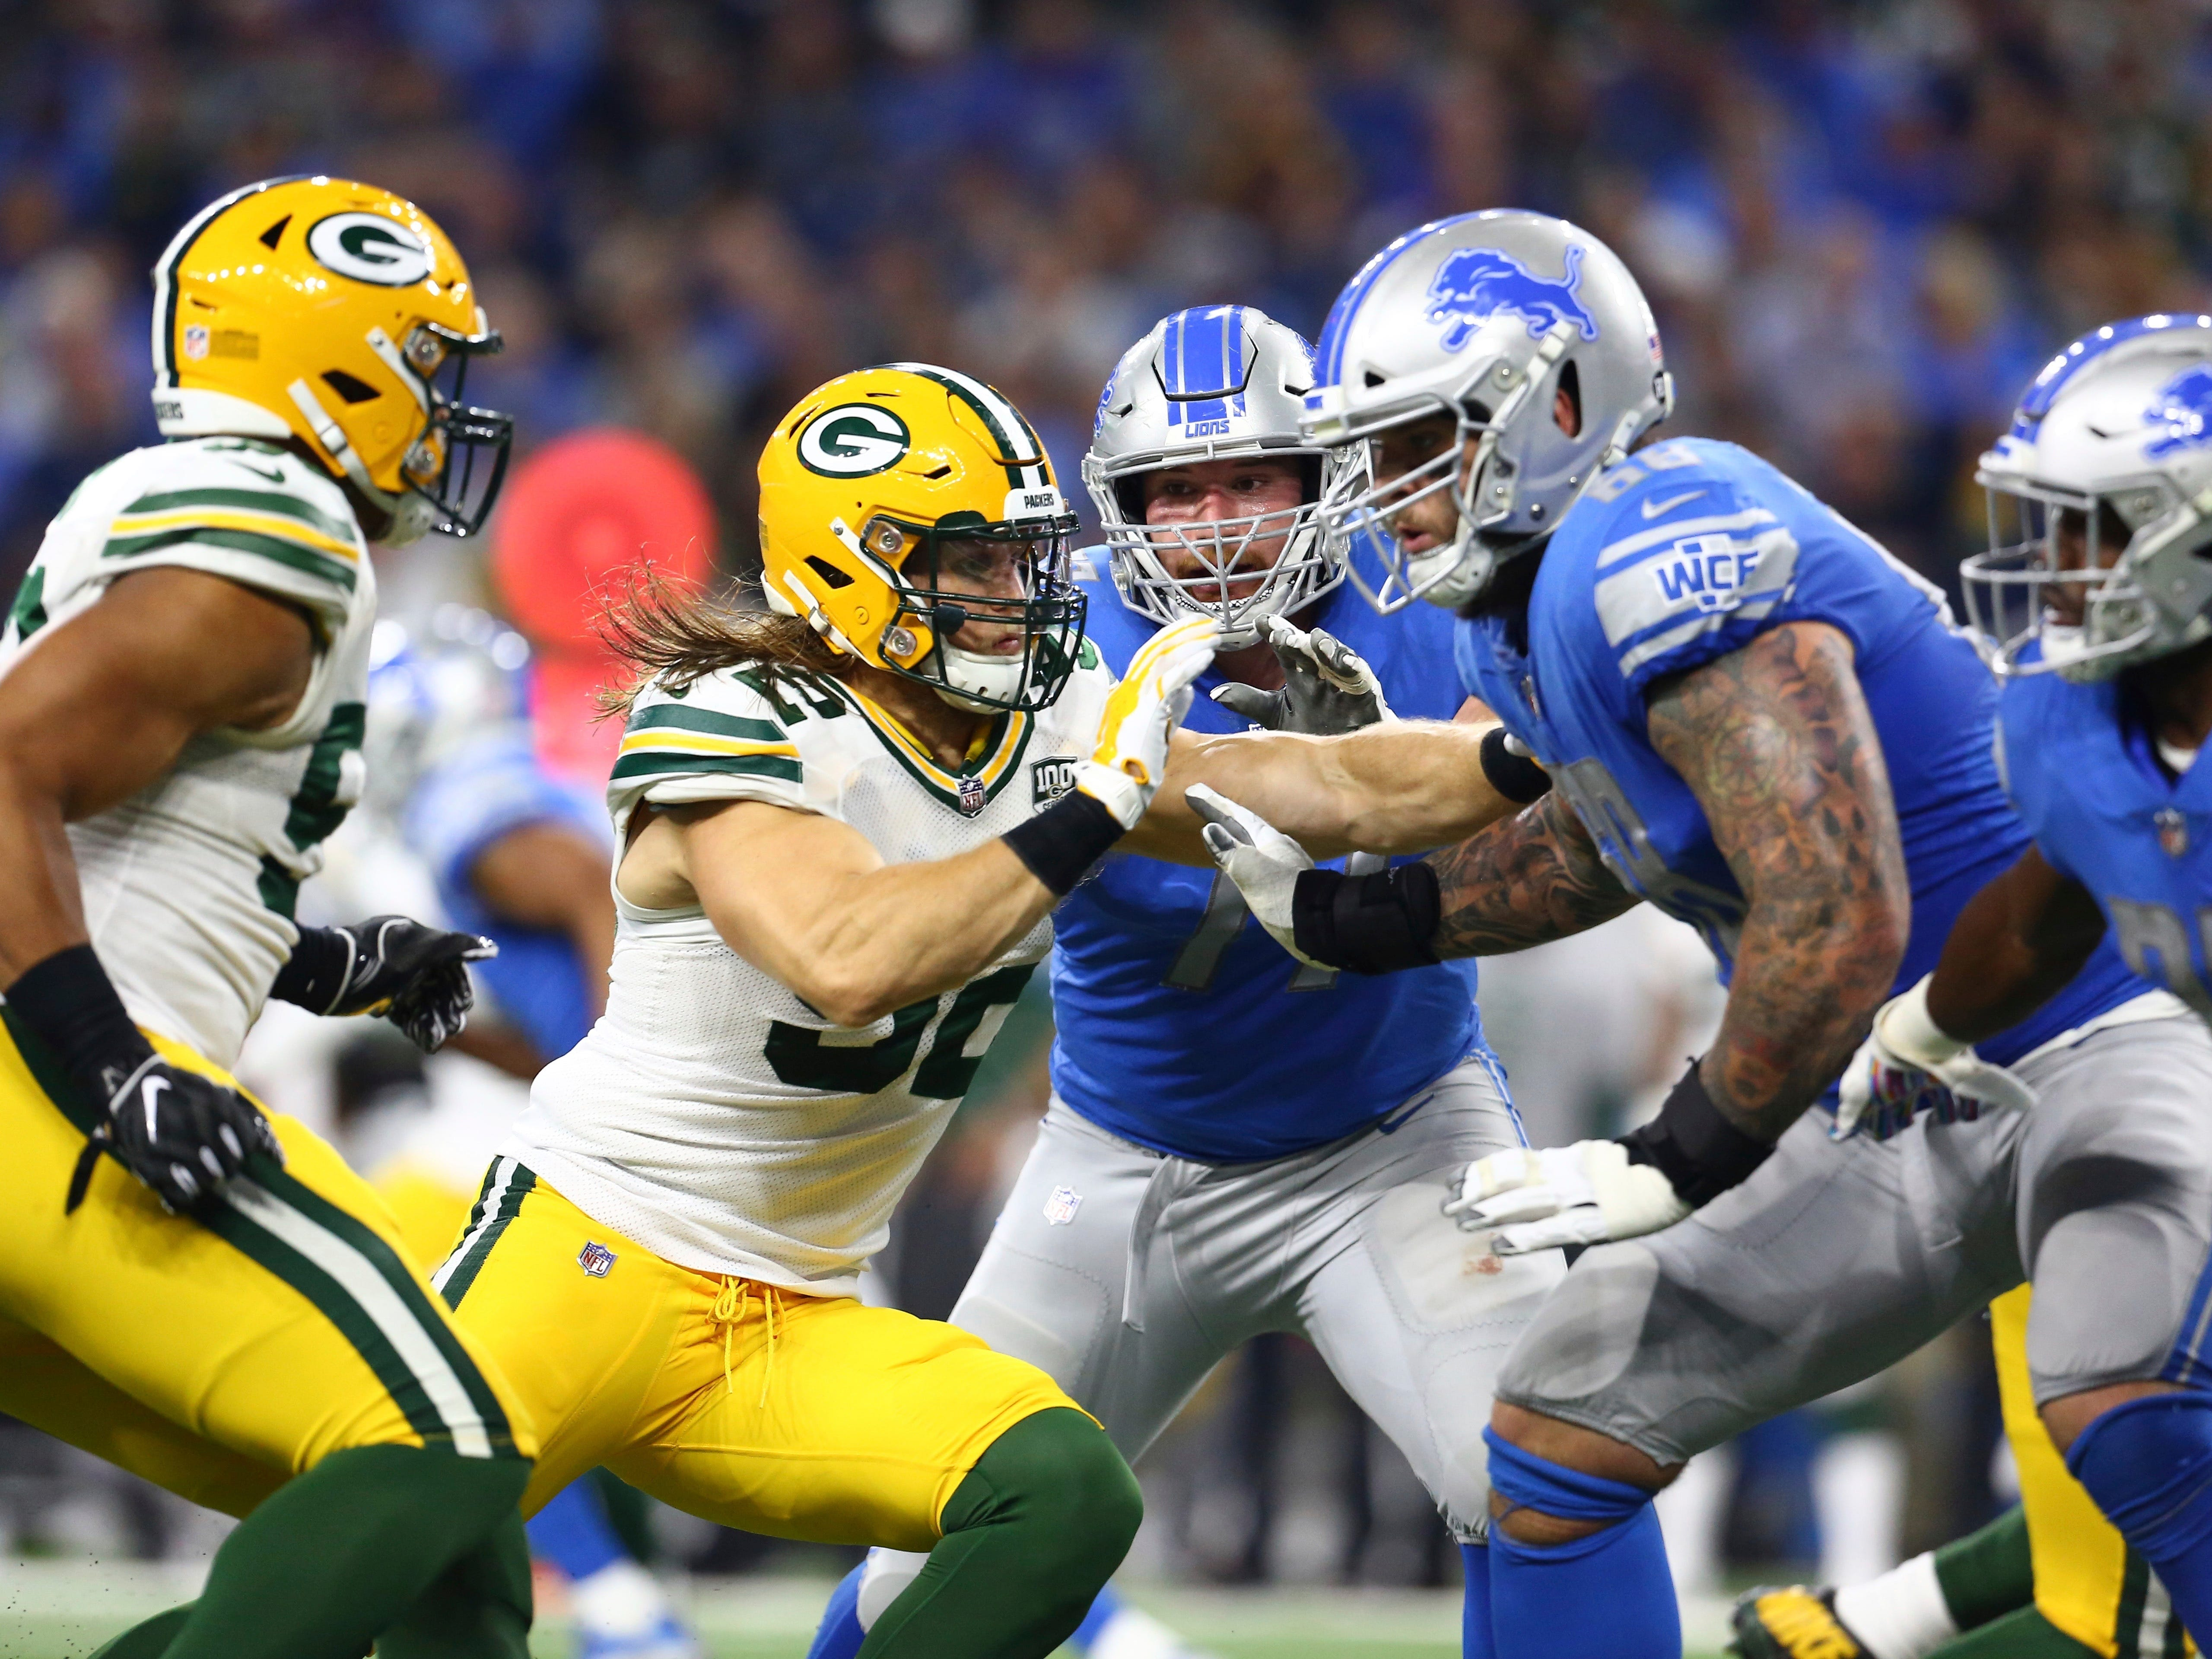 Green Bay Packers linebacker Clay Matthews, center, leads the tackle during the first half of an NFL football game against the Detroit Lions, Sunday, Oct. 7, 2018, in Detroit.